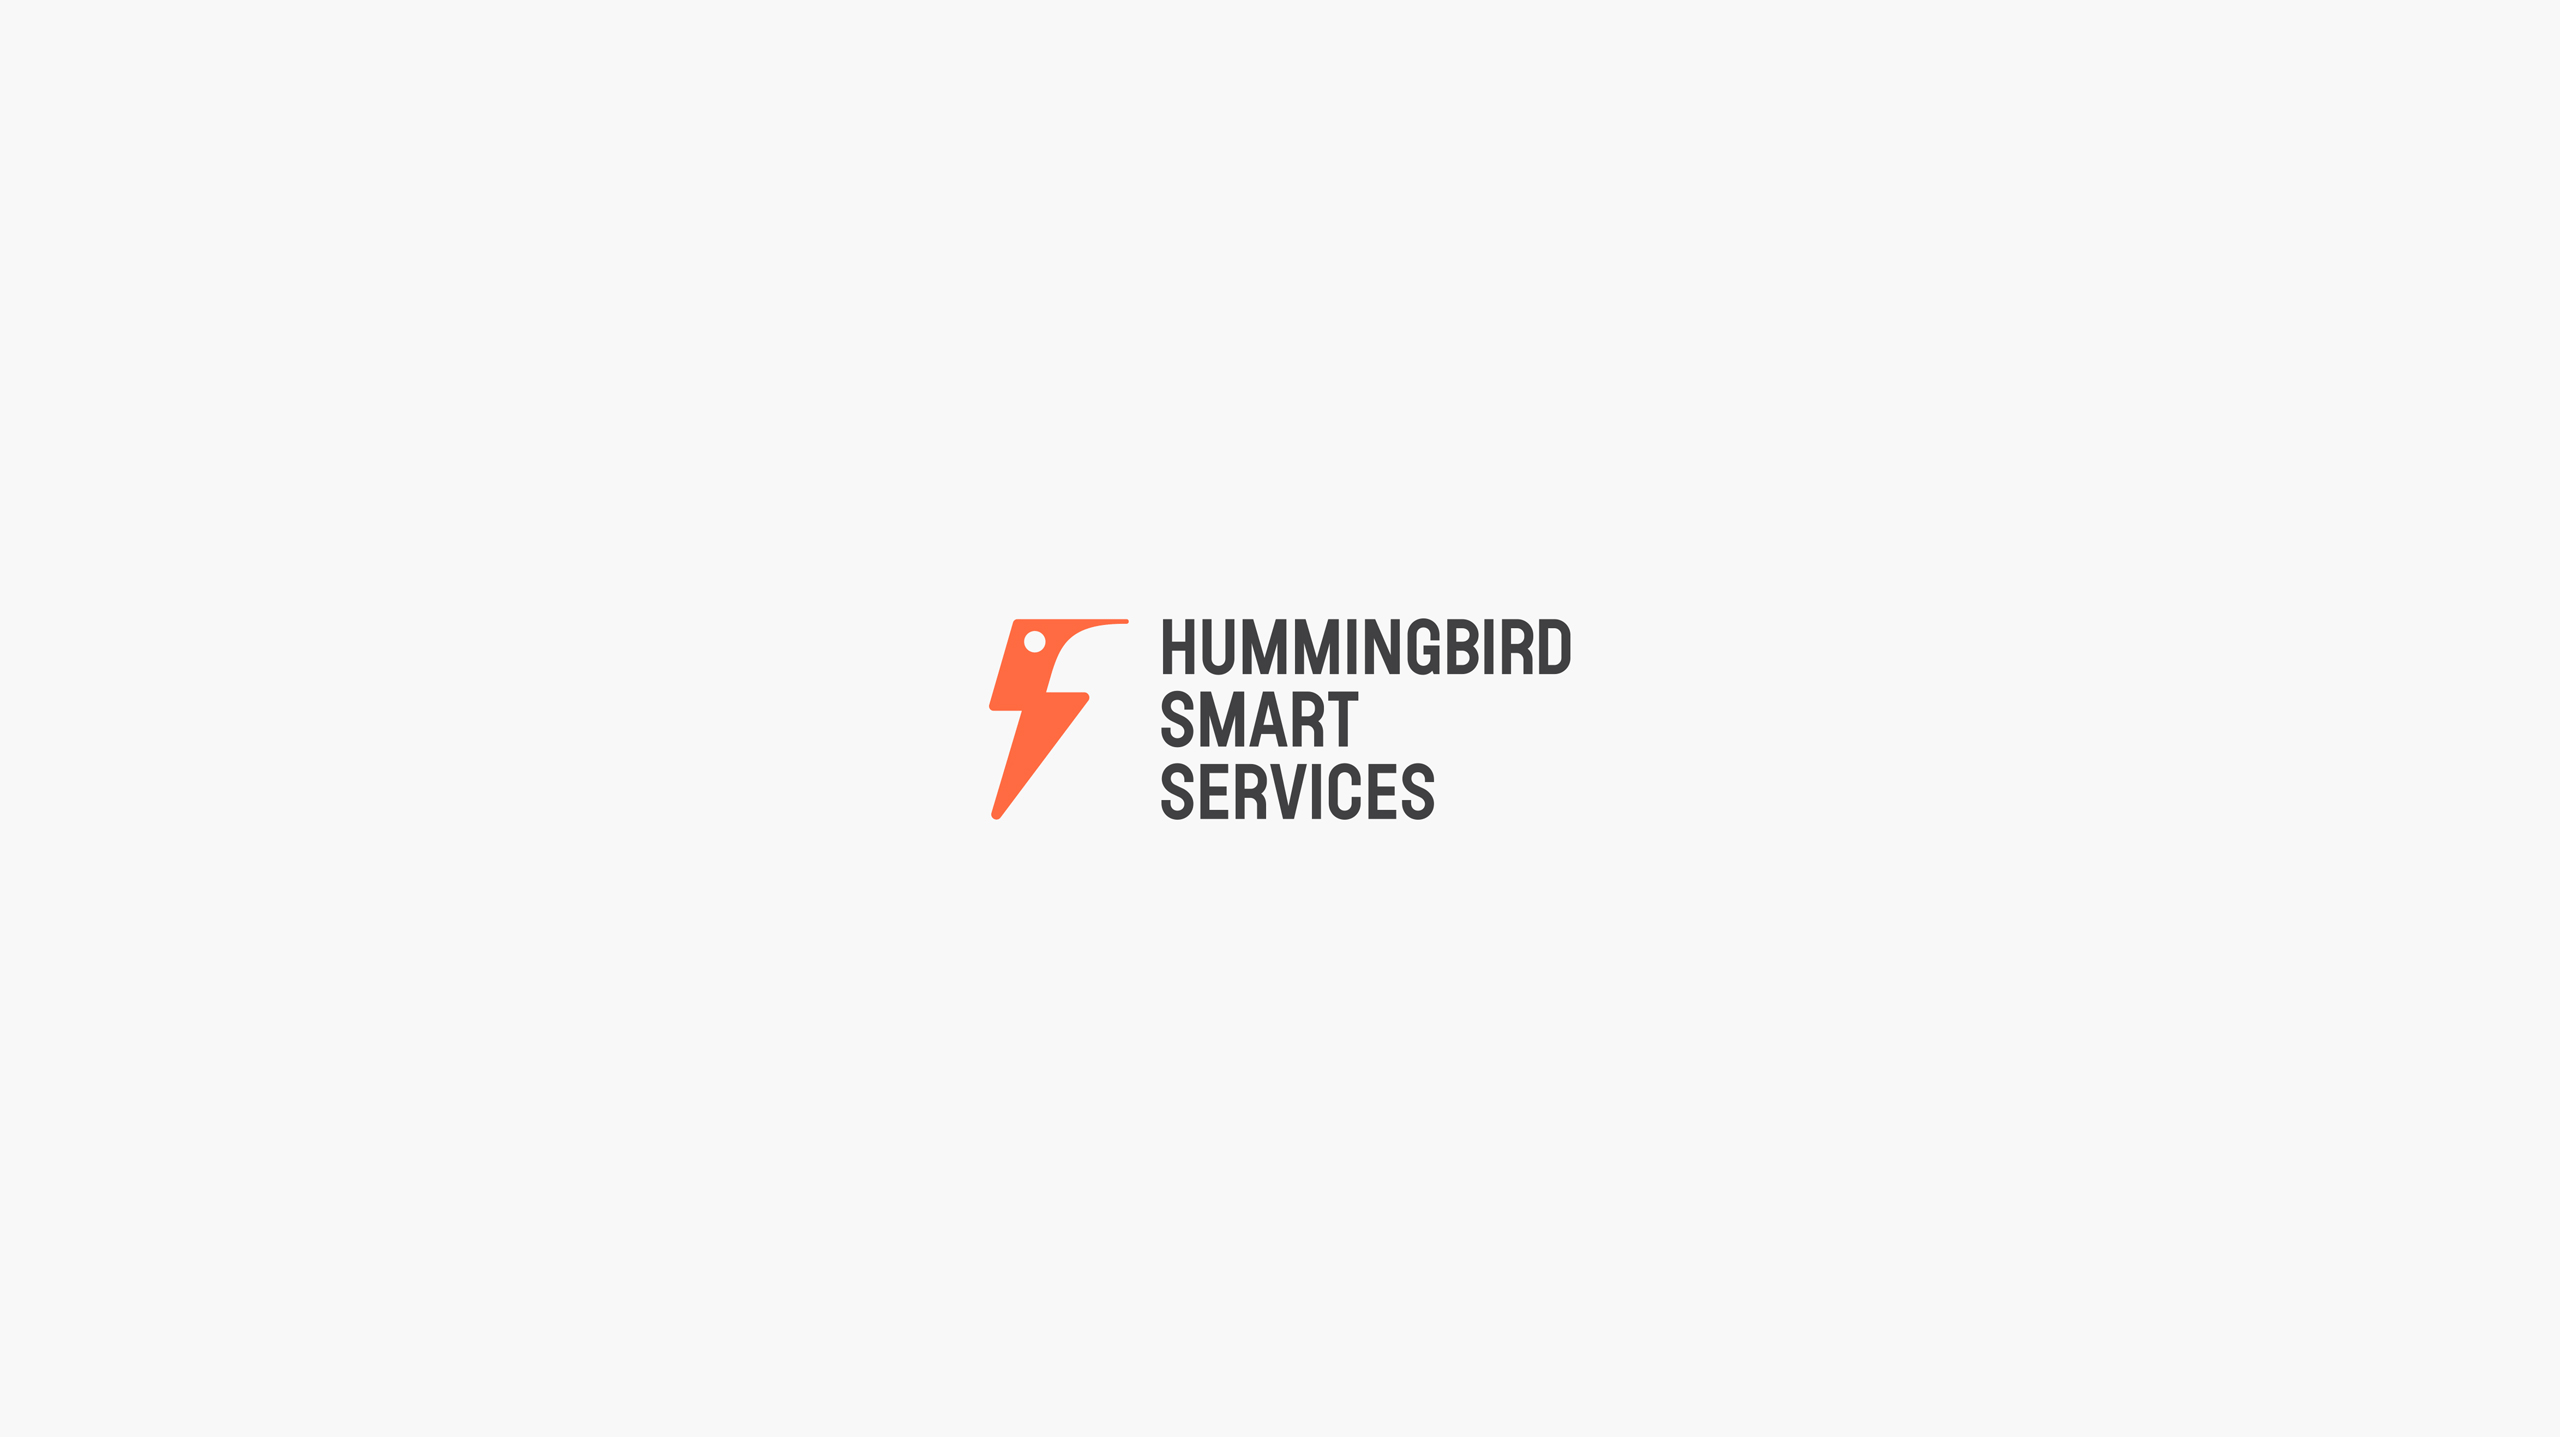 Hummingbird-Smart_Full-logo_MustaaliRaj